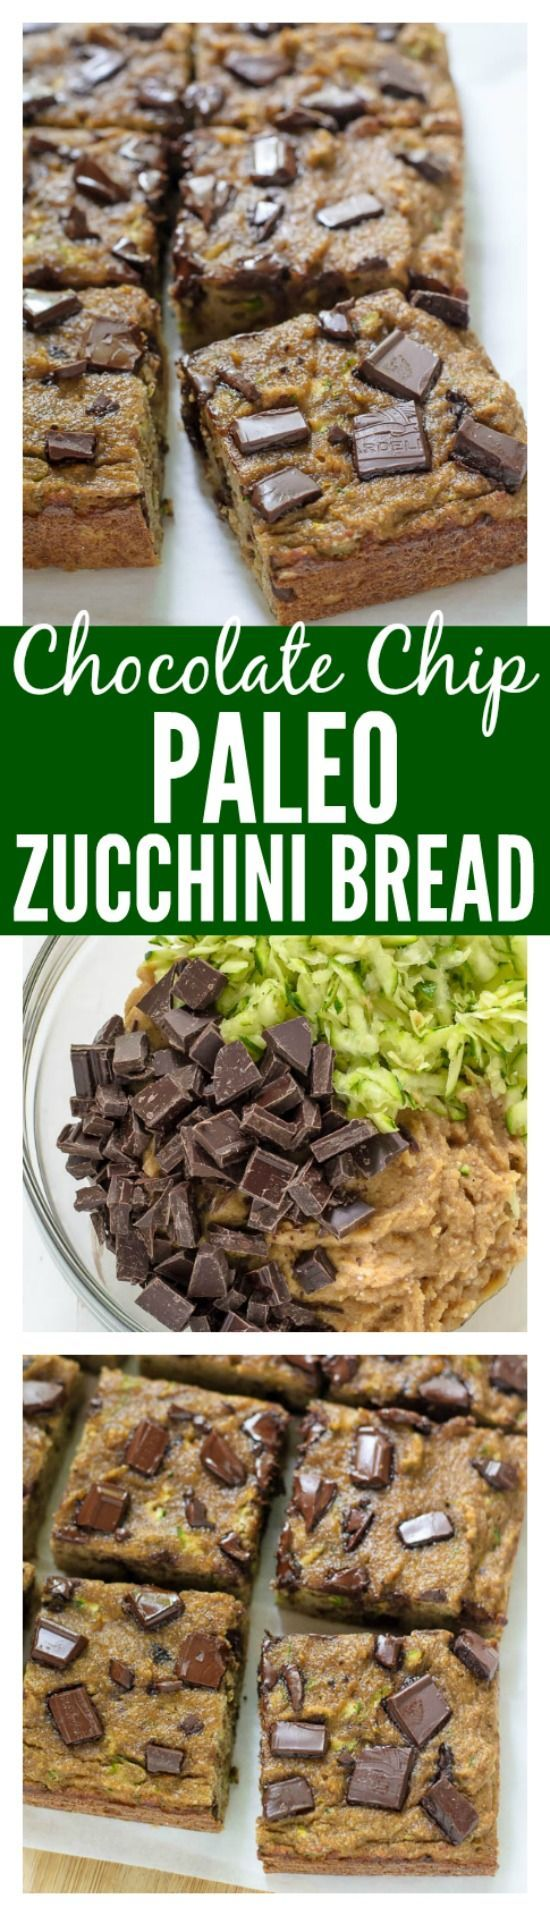 1000+ ideas about Healthy Zucchini Bread on Pinterest ...